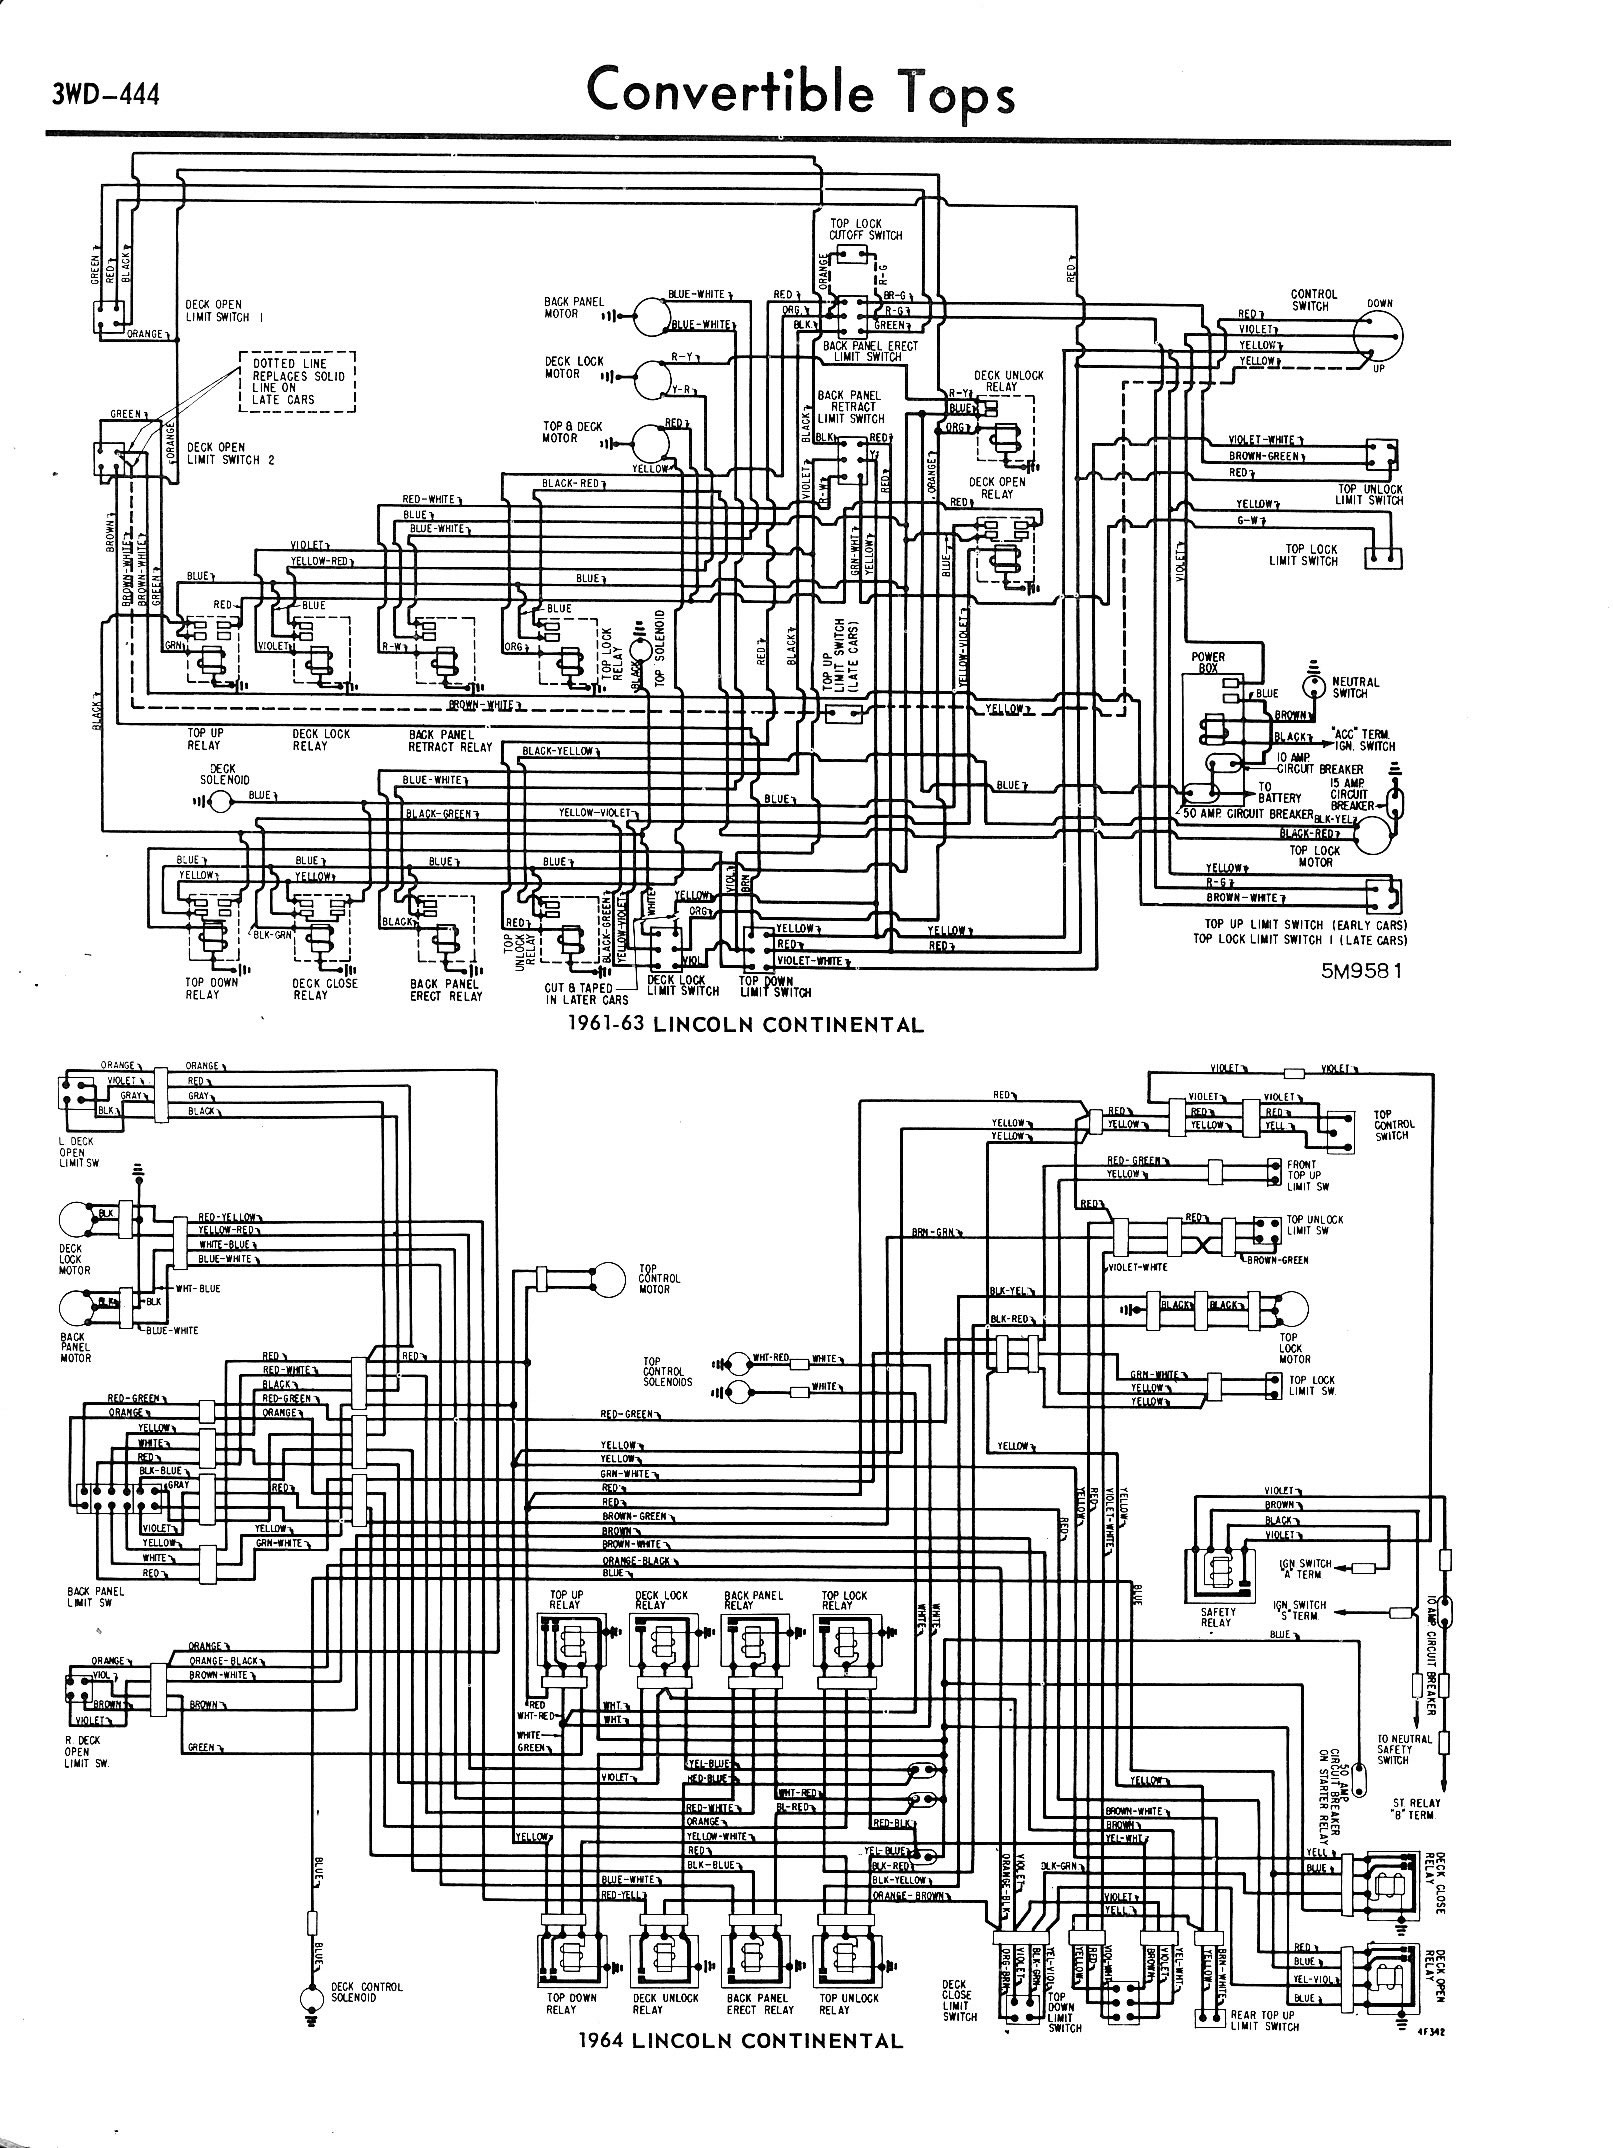 1964 Fairlane Wiring Diagram Manual List Of Schematic Circuit Free Download Ford Diagrams Rh Wizard Com